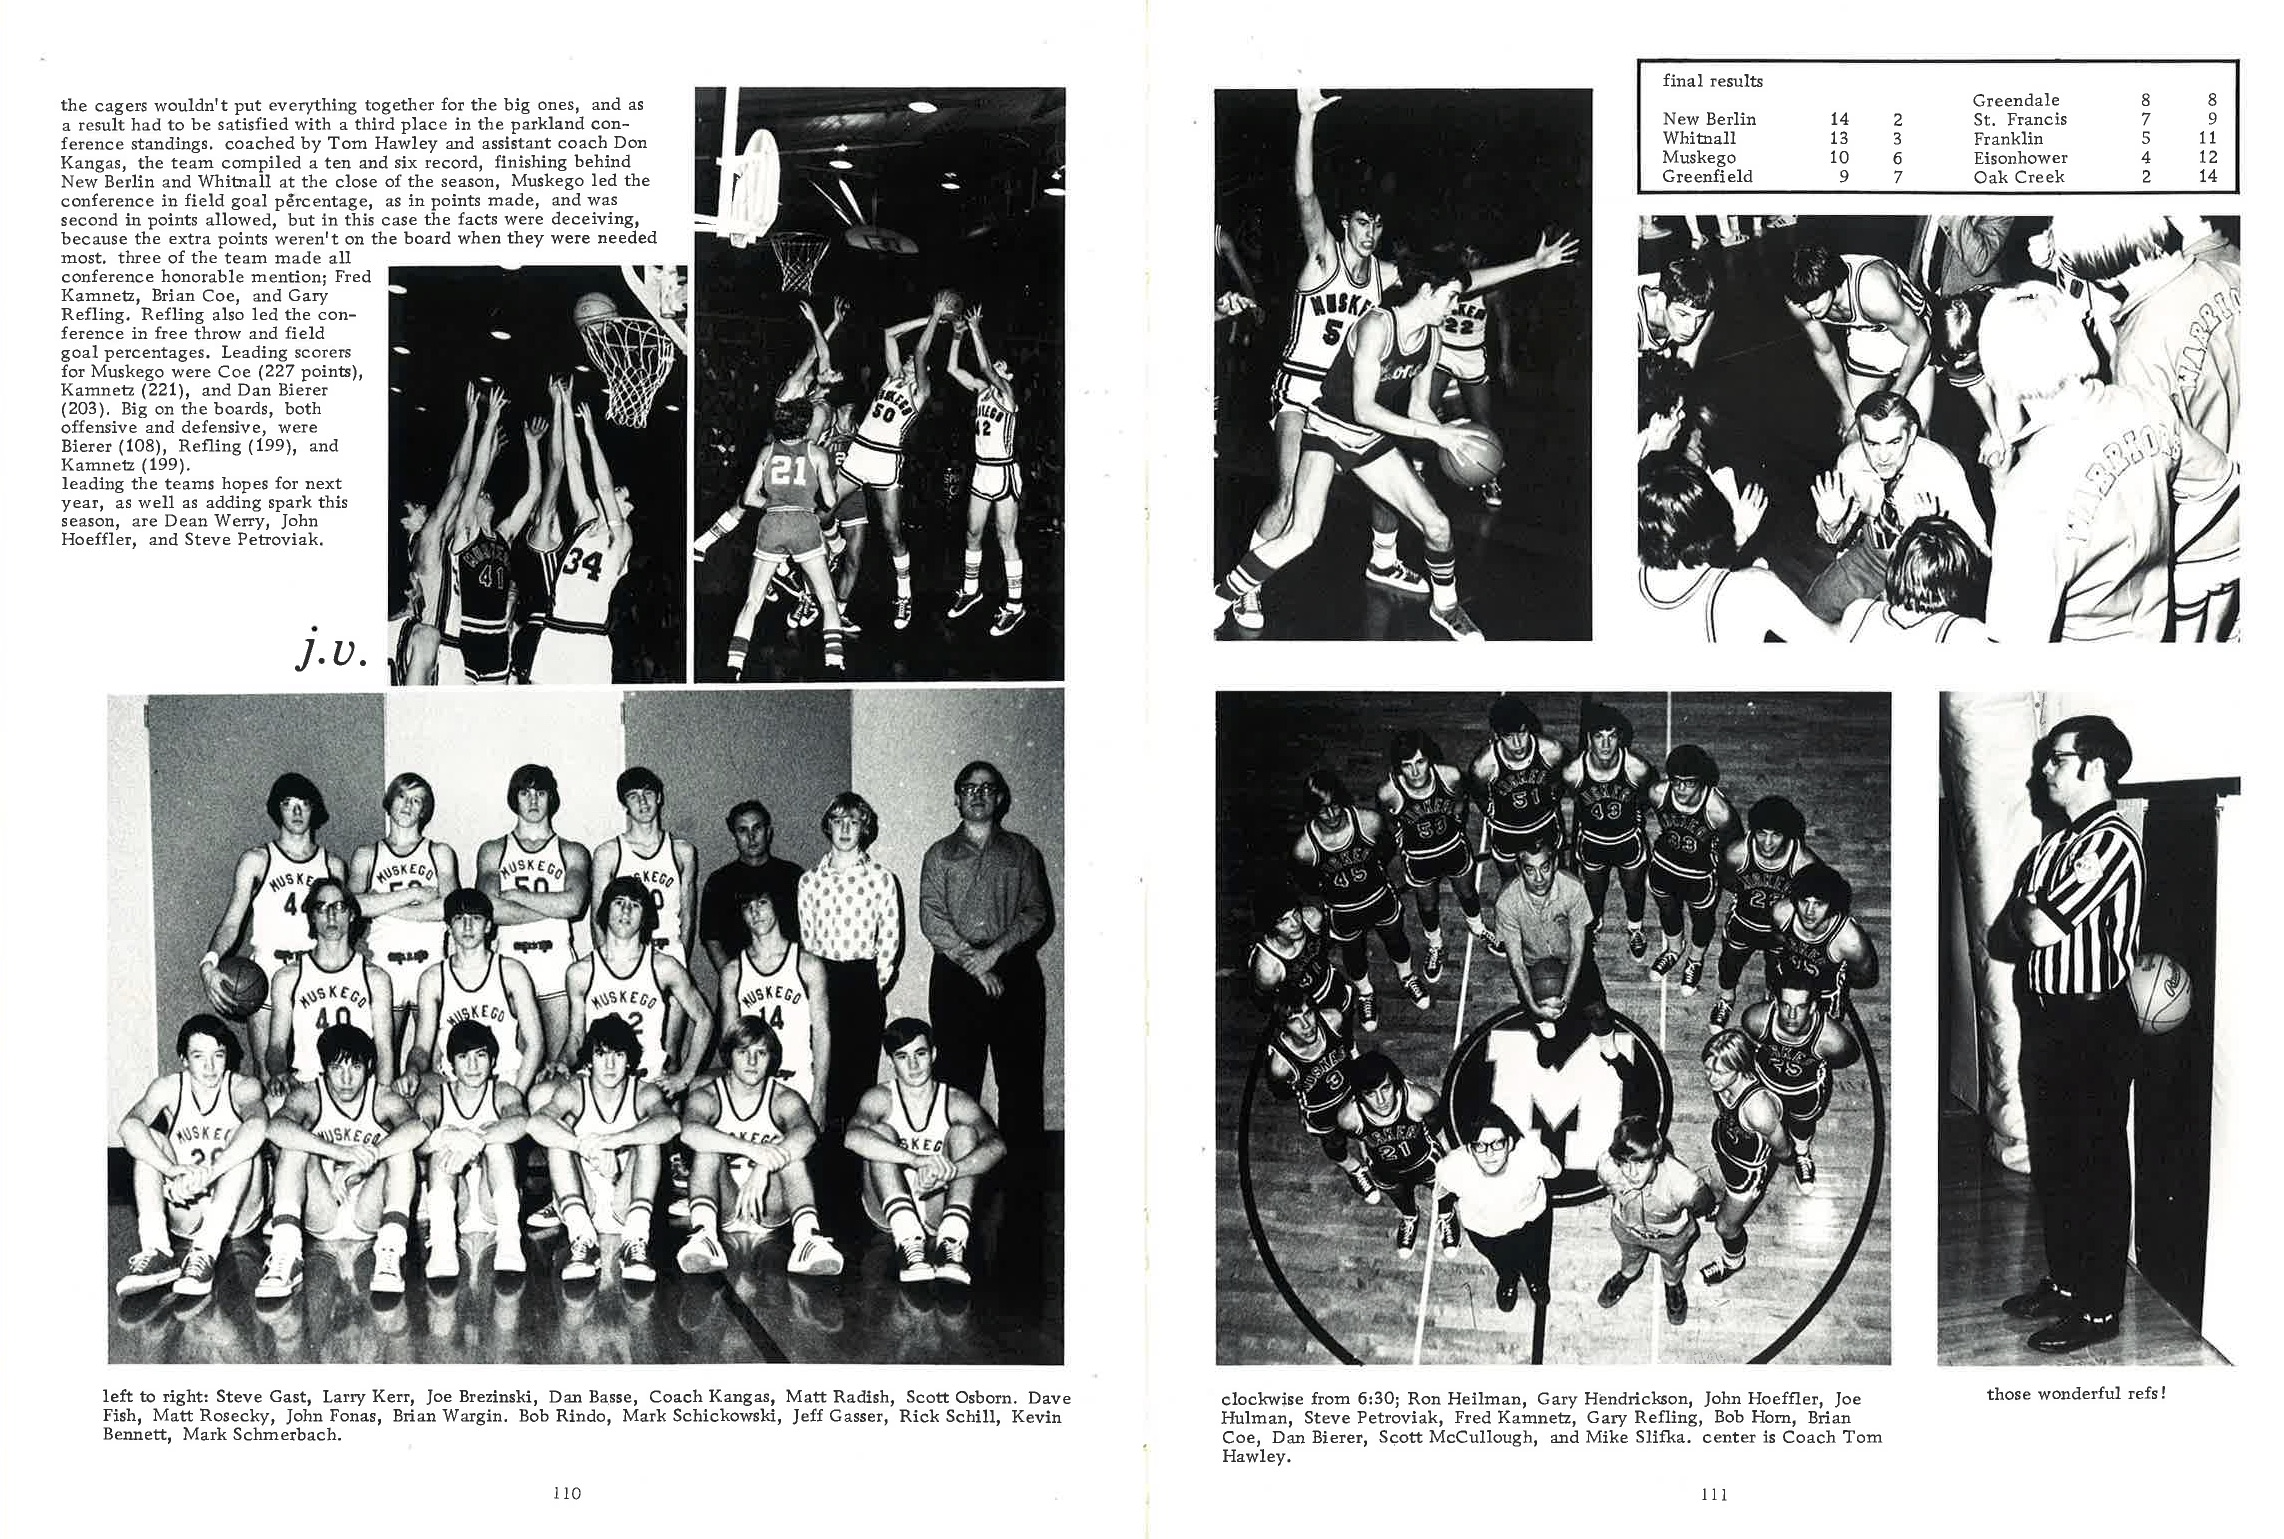 1973_Yearbook_110-111.jpg